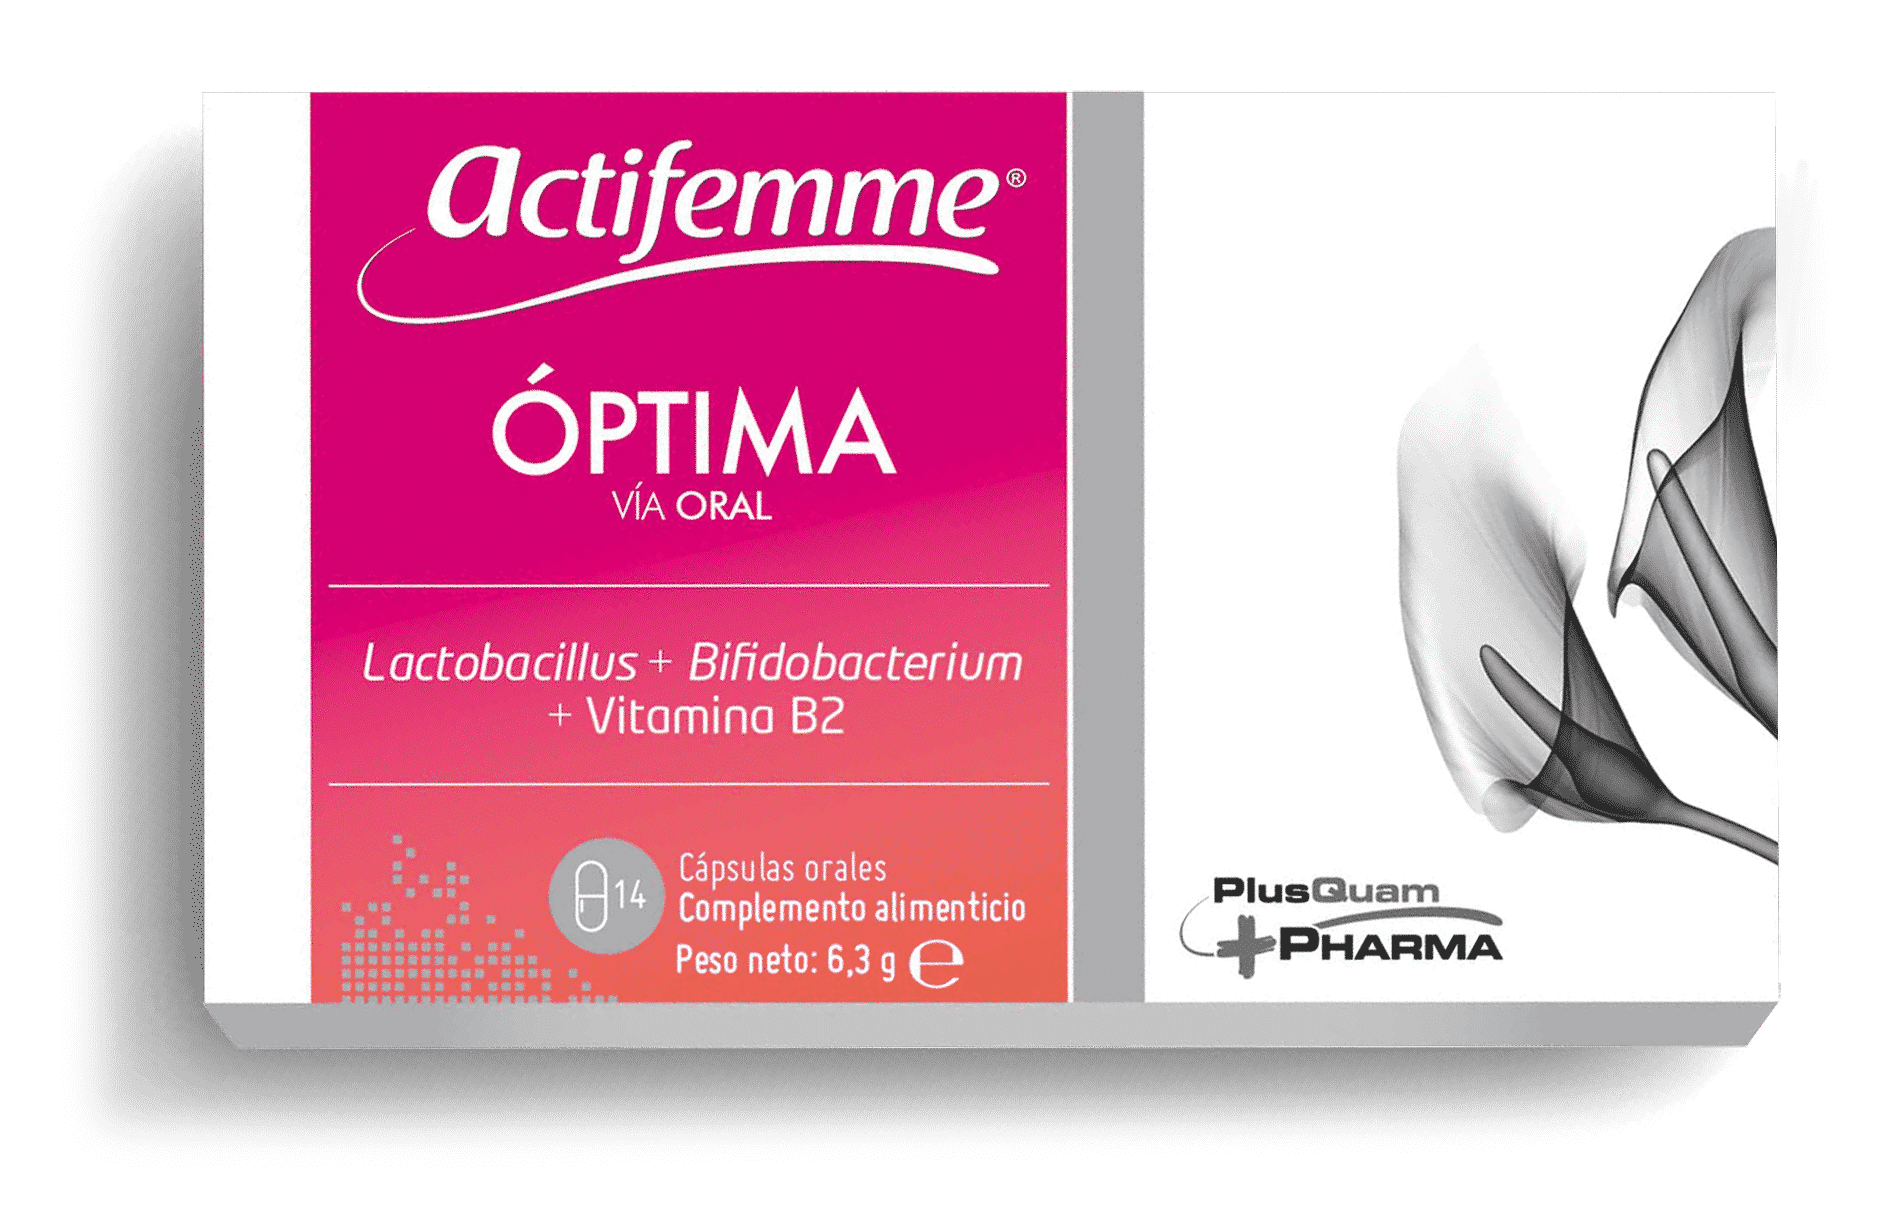 actifemme-optima-header 1